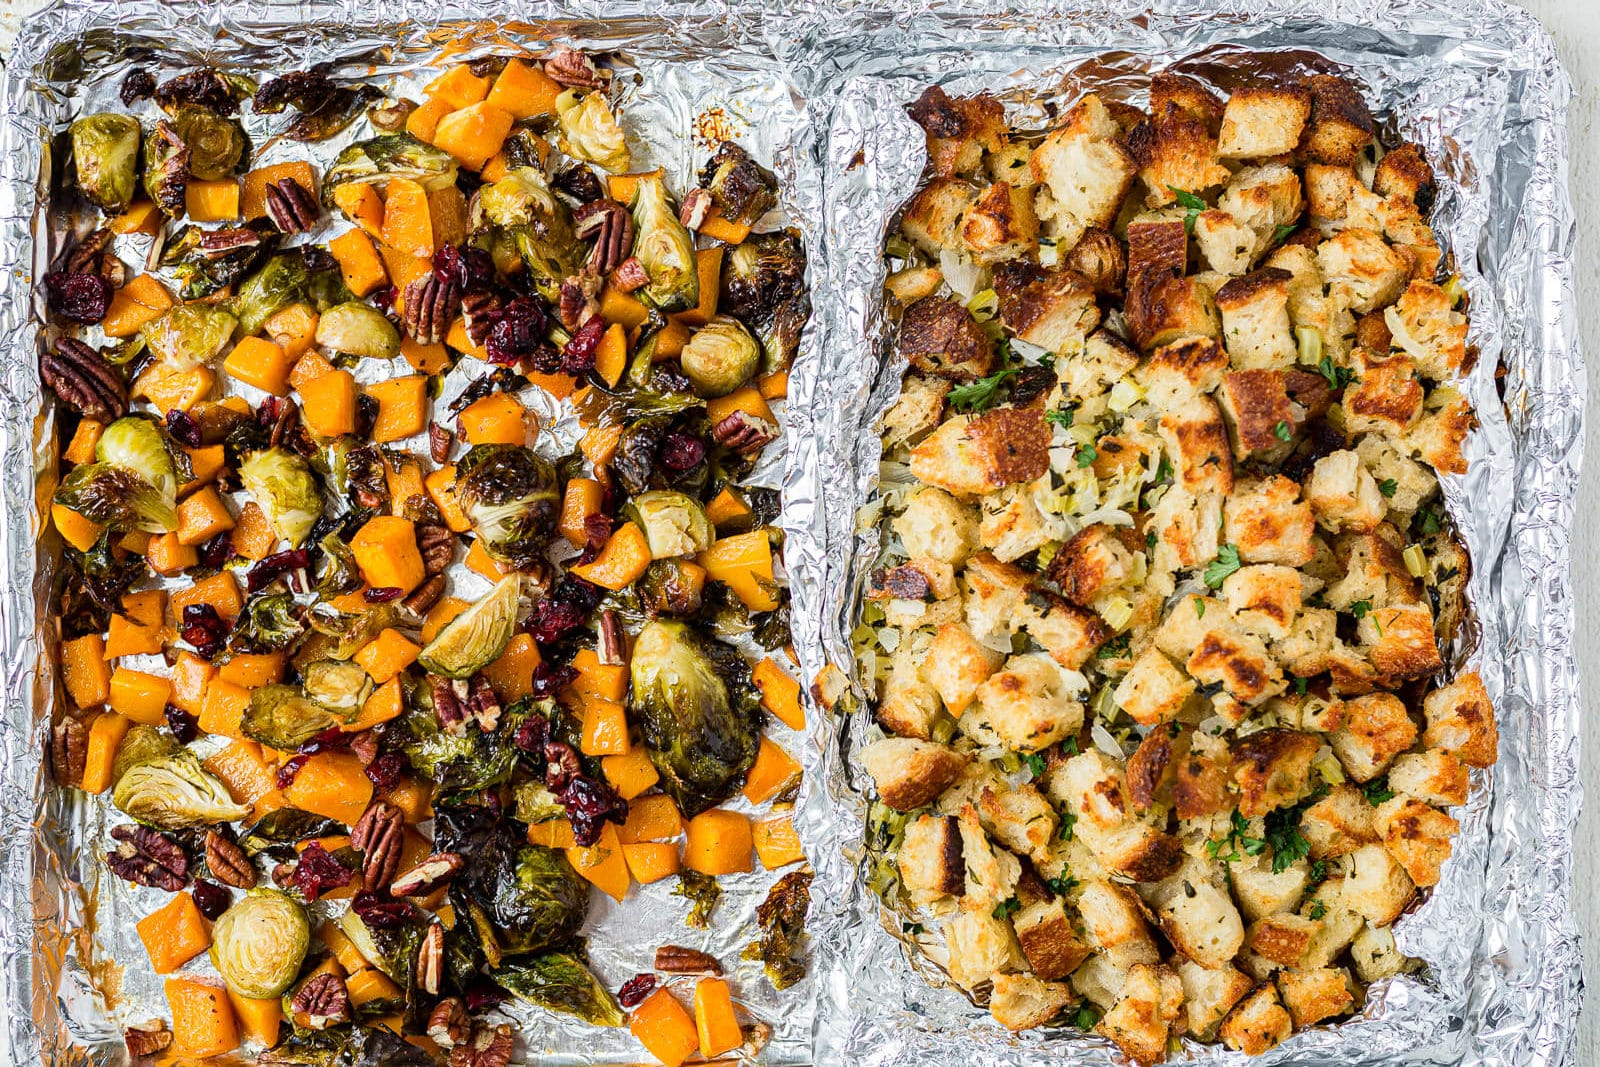 roasted veggies and stuffing for thanksgiving dinner